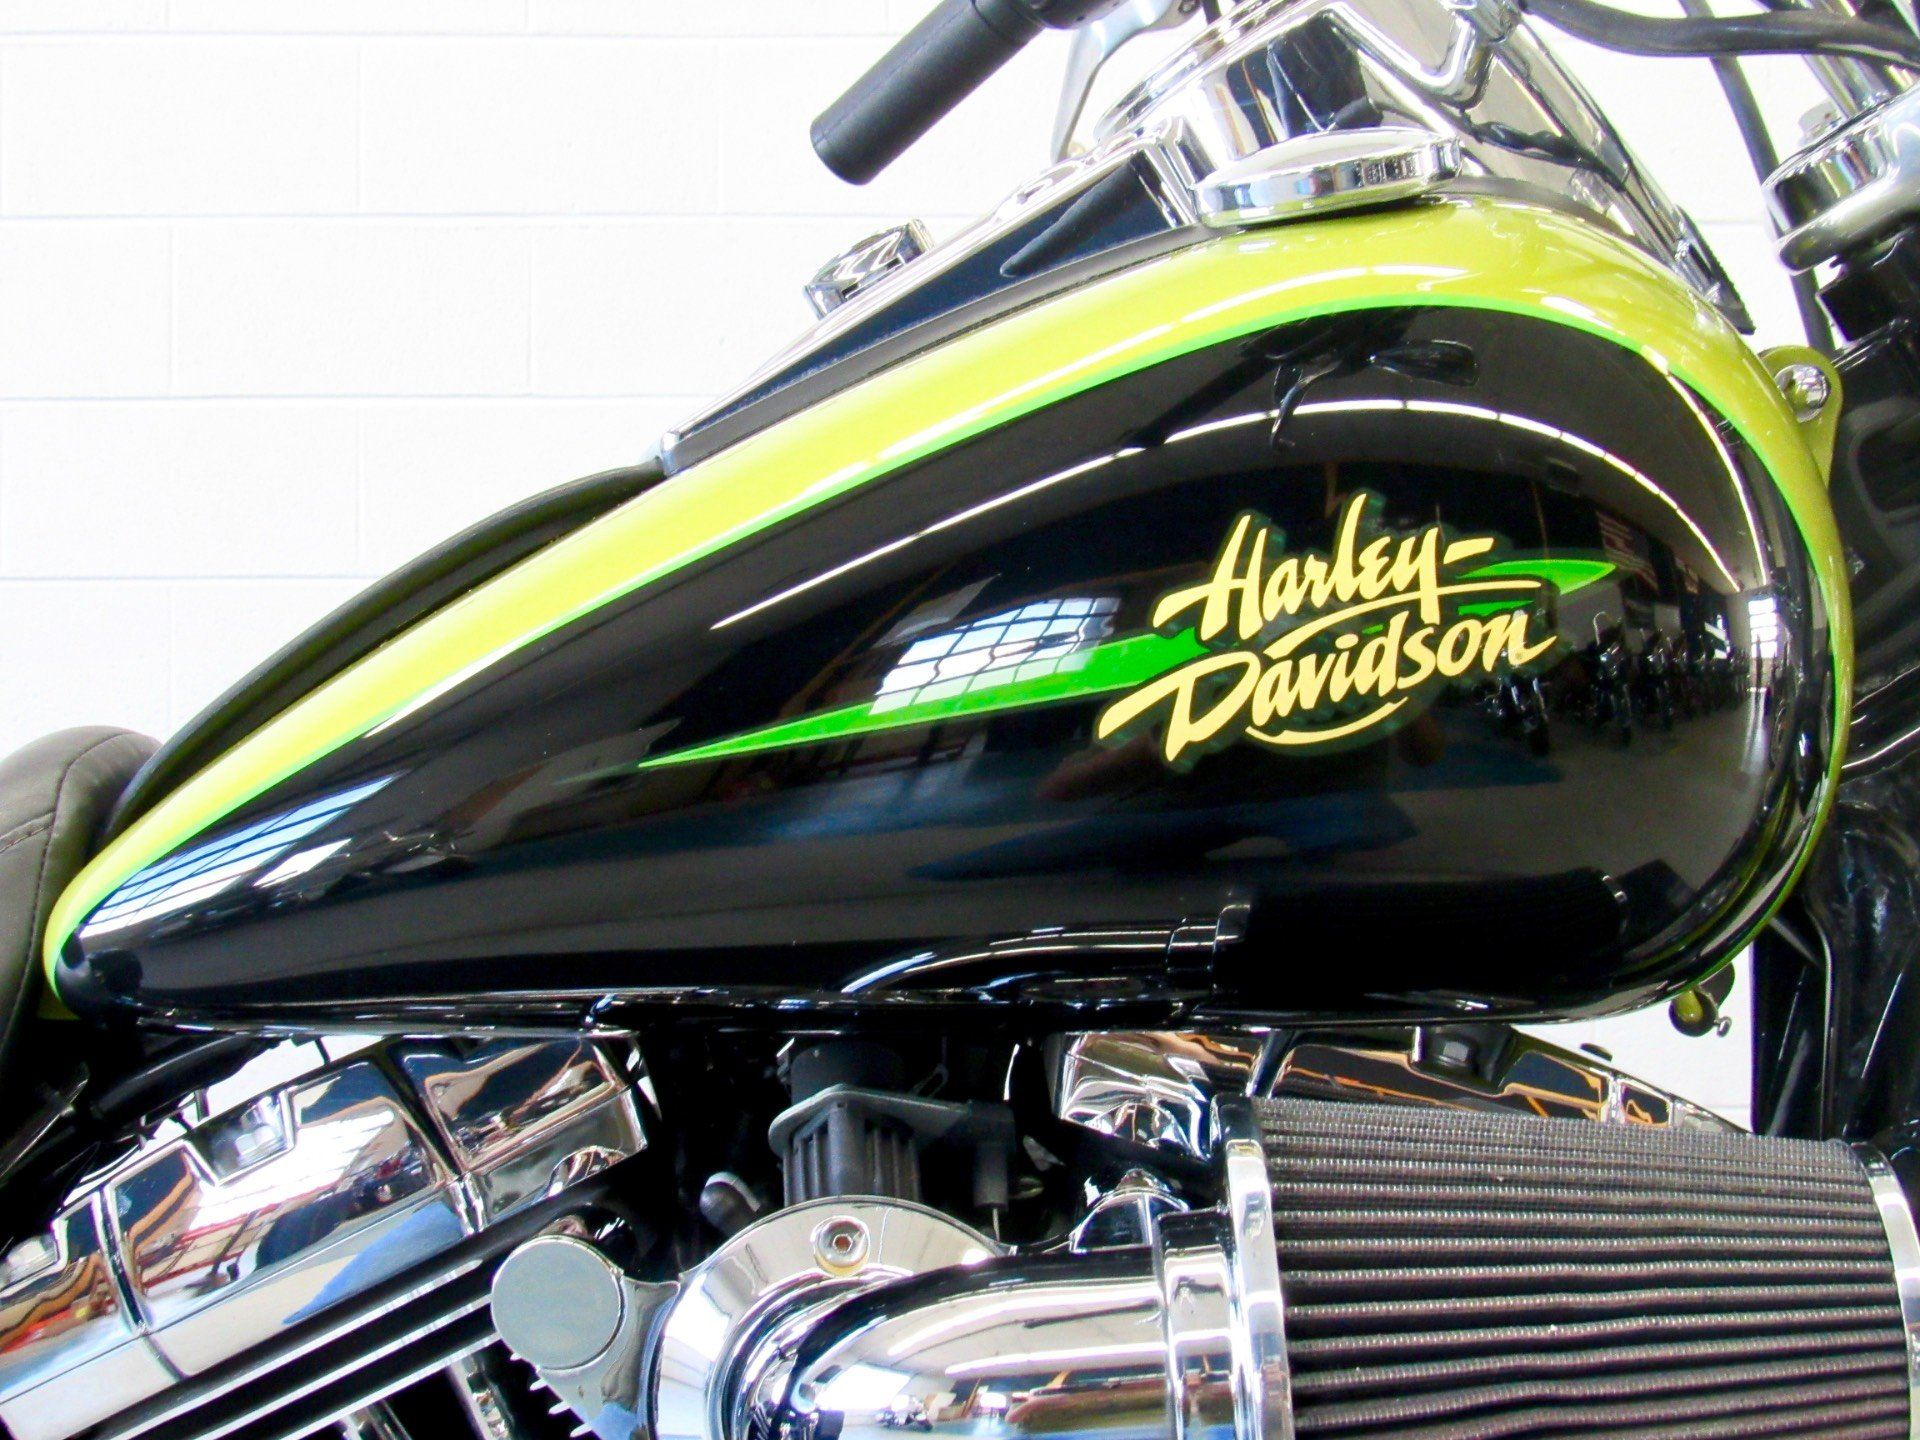 2011 Harley-Davidson Dyna® Super Glide® Custom in Fredericksburg, Virginia - Photo 13